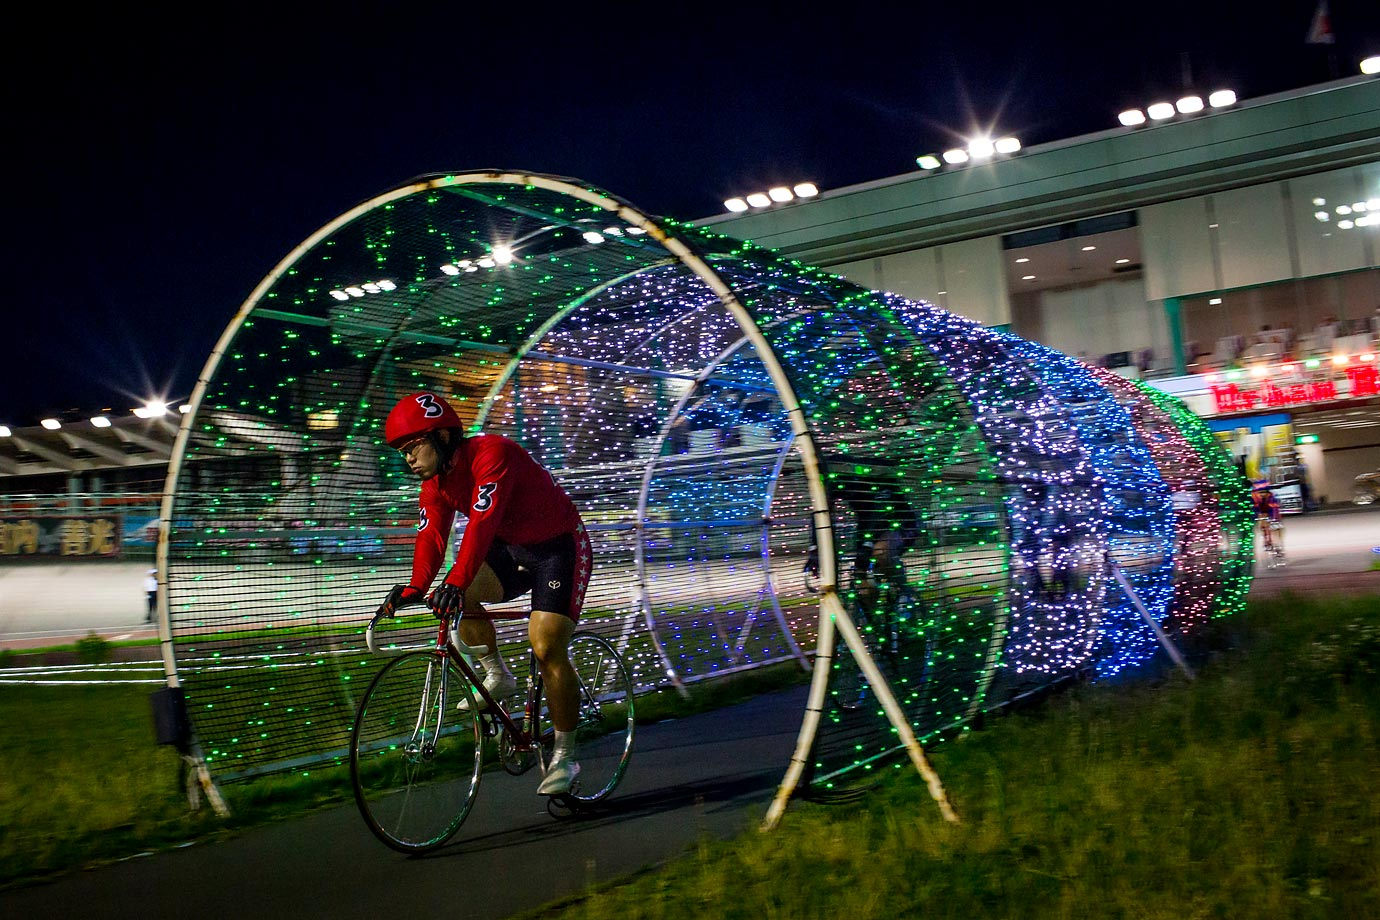 A cyclist enters the velodrome during Keirin races at Kawasaki Velodrome in Japan. Keirin is a form of racing developed in Japan around 1948 for gambling purposes, and has since become extremely popular.